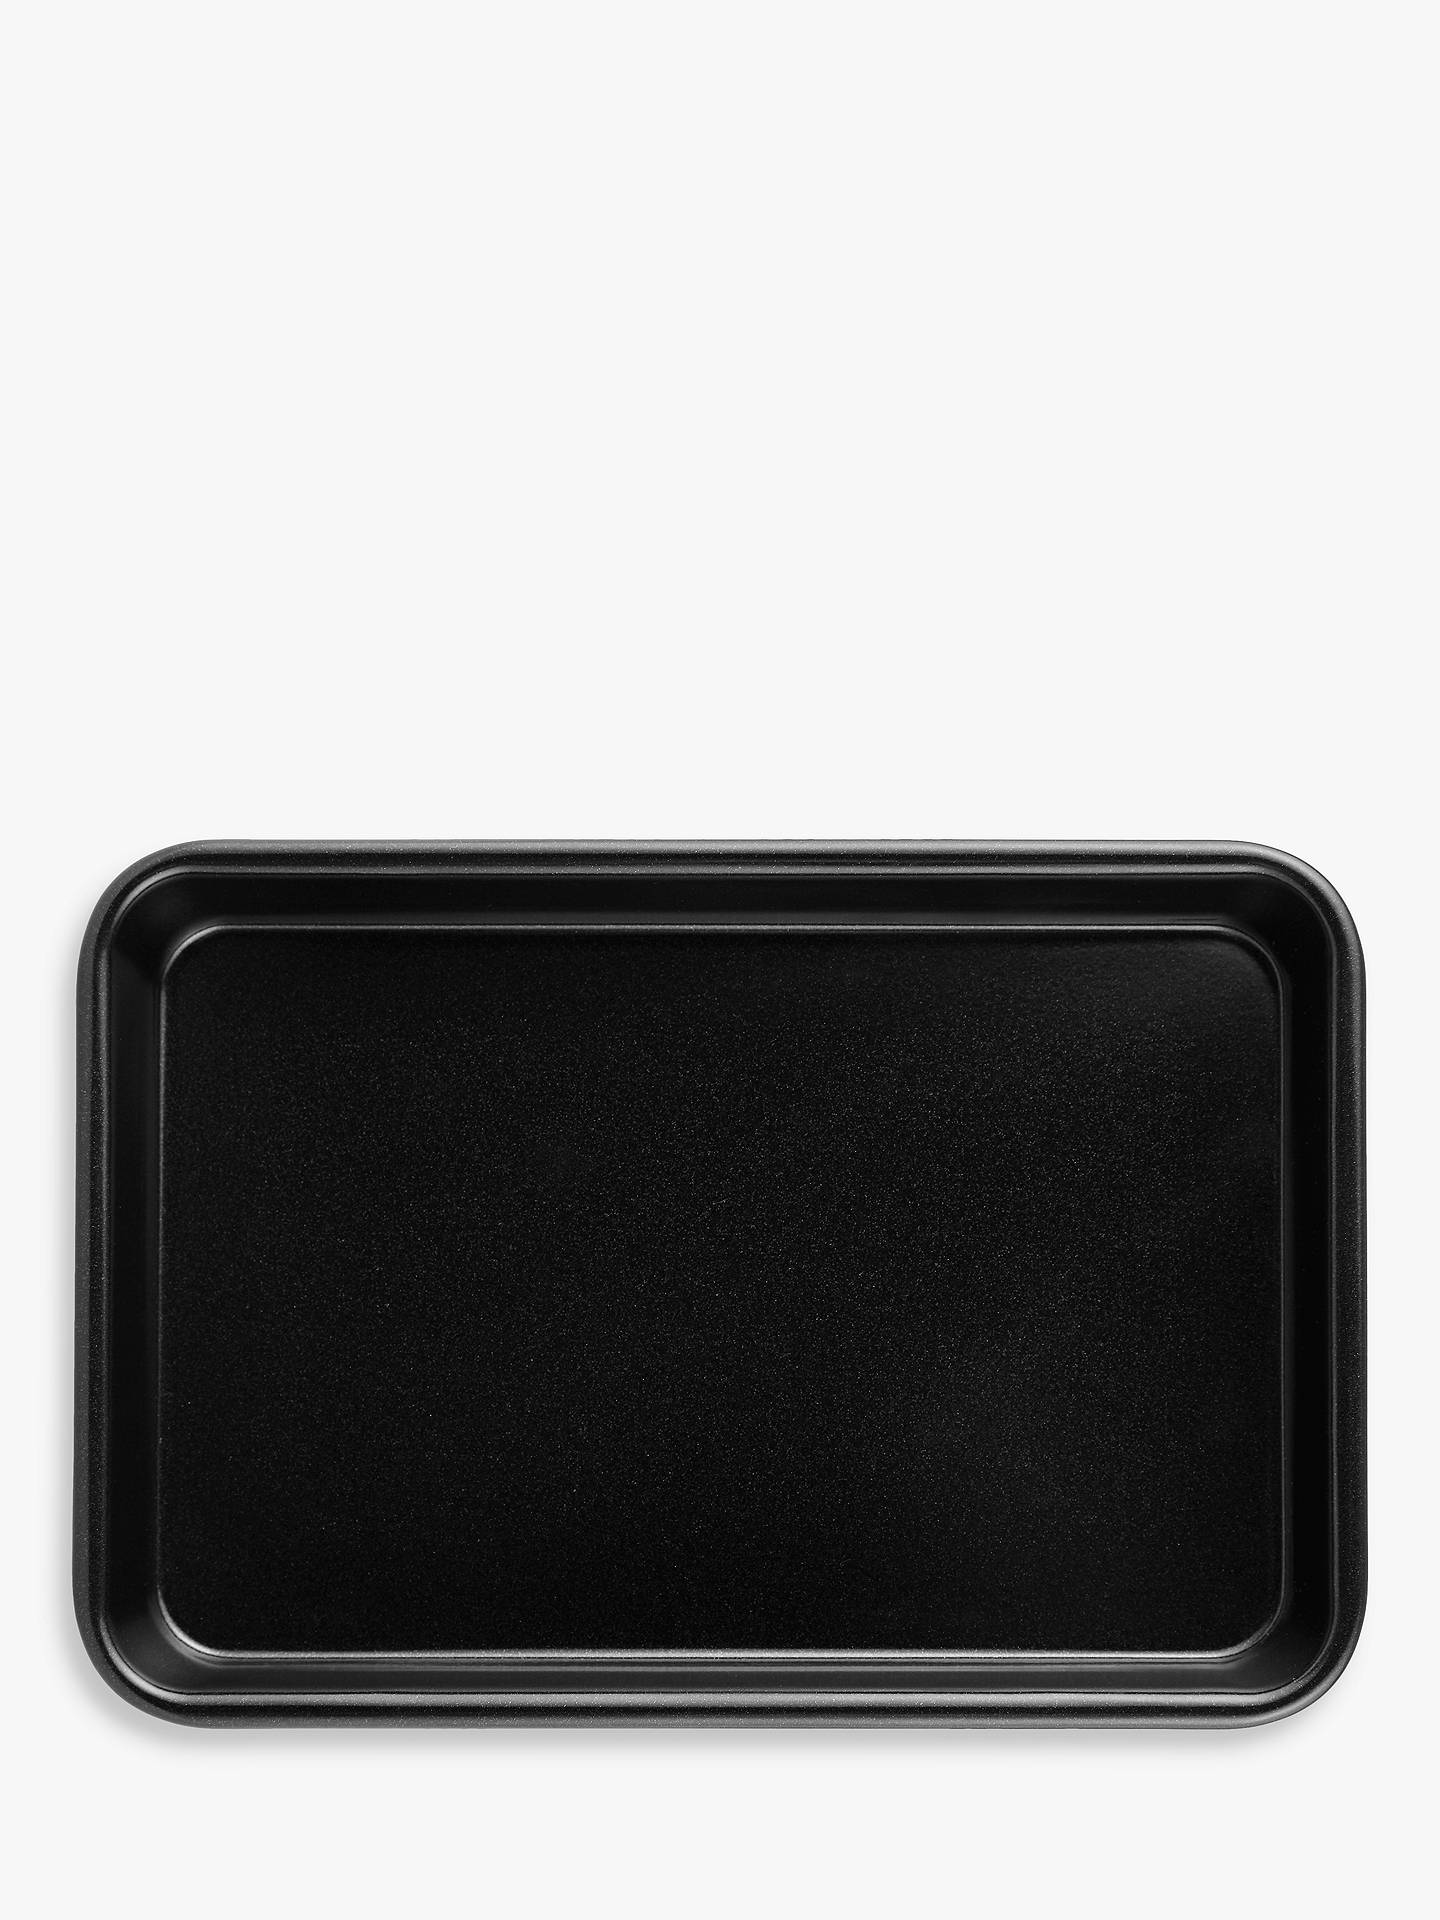 Buy John Lewis & Partners Professional Non-Stick Oven Tray, L18 x W12cm Online at johnlewis.com